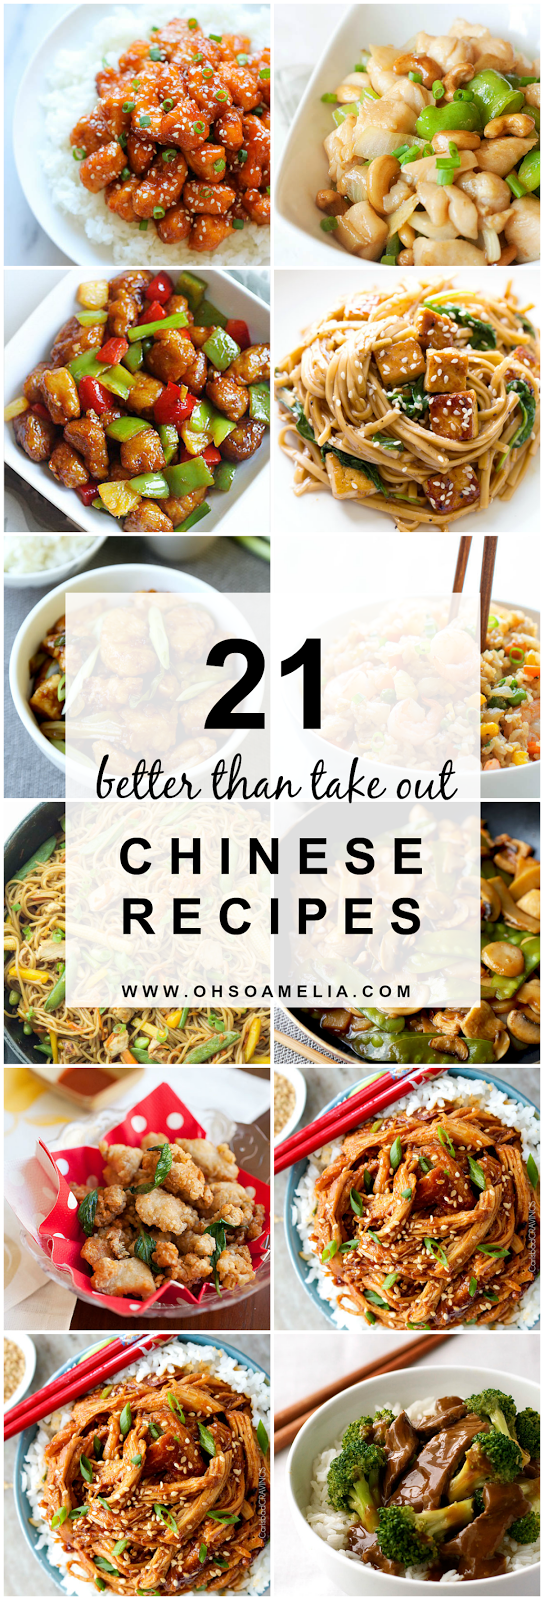 21 better than take out Chinese recipes